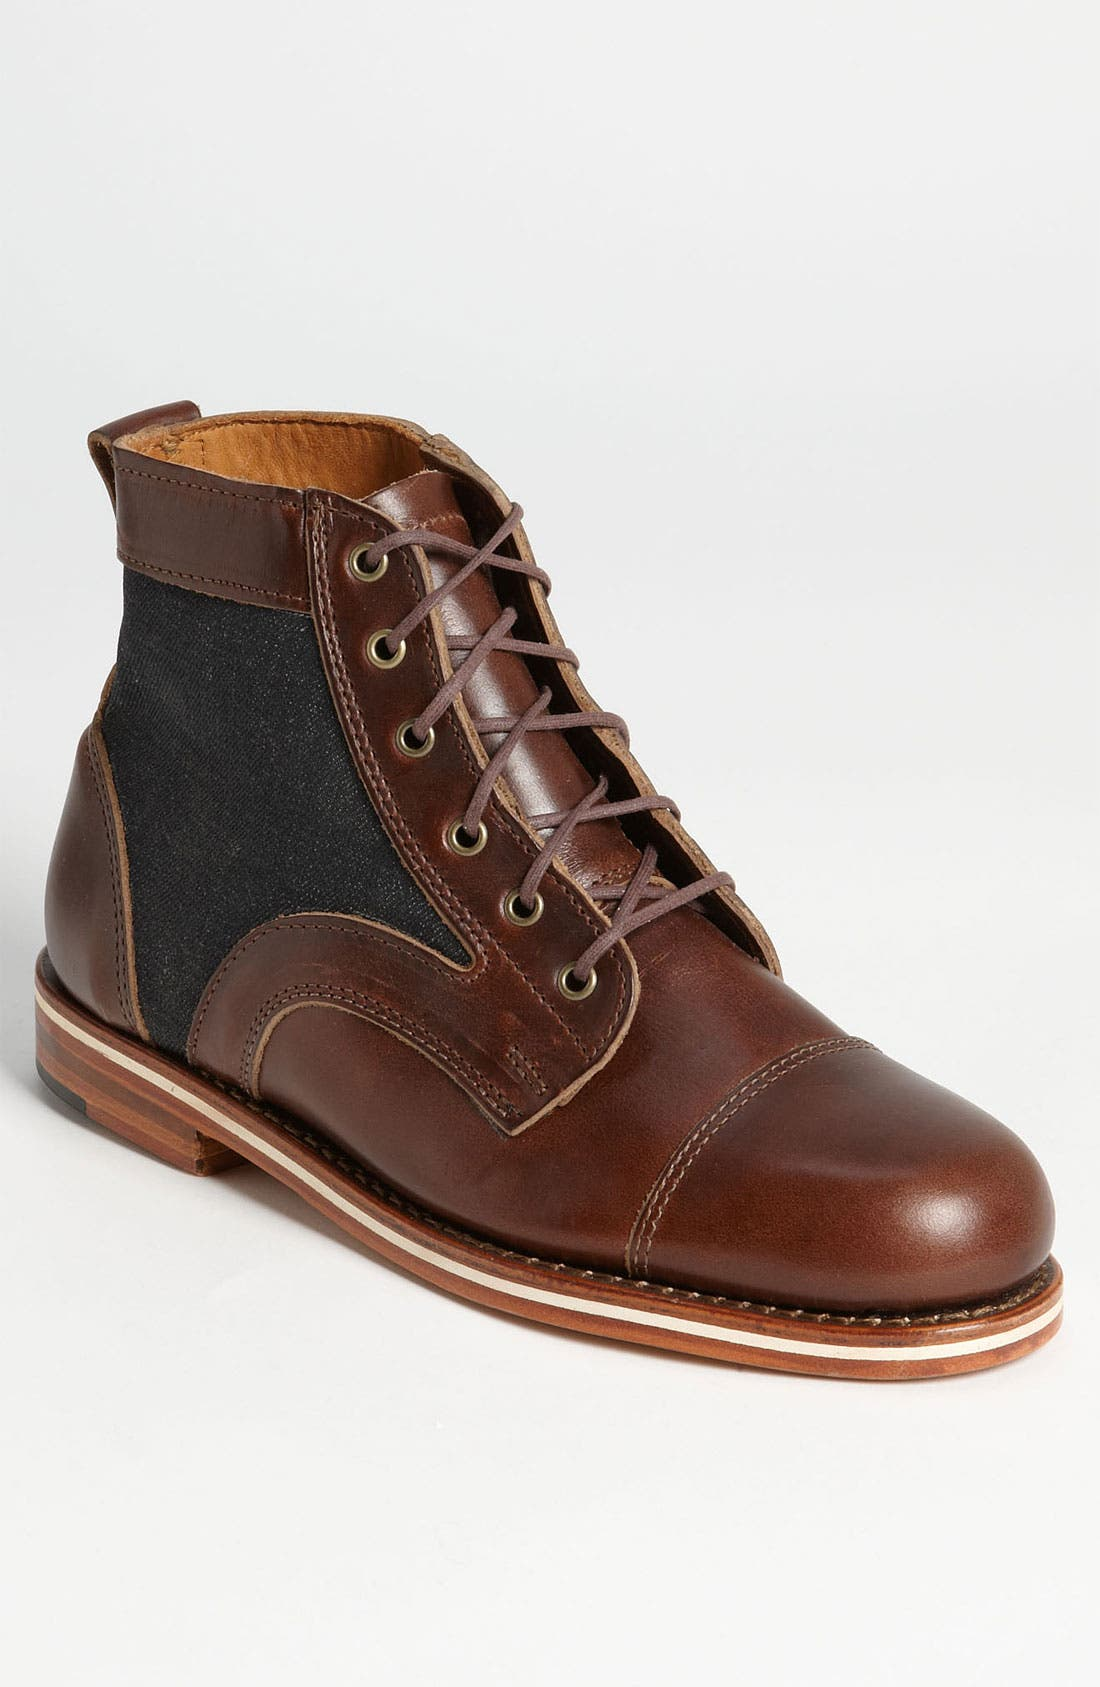 Main Image - HELM 'Reid' Cap Toe Boot